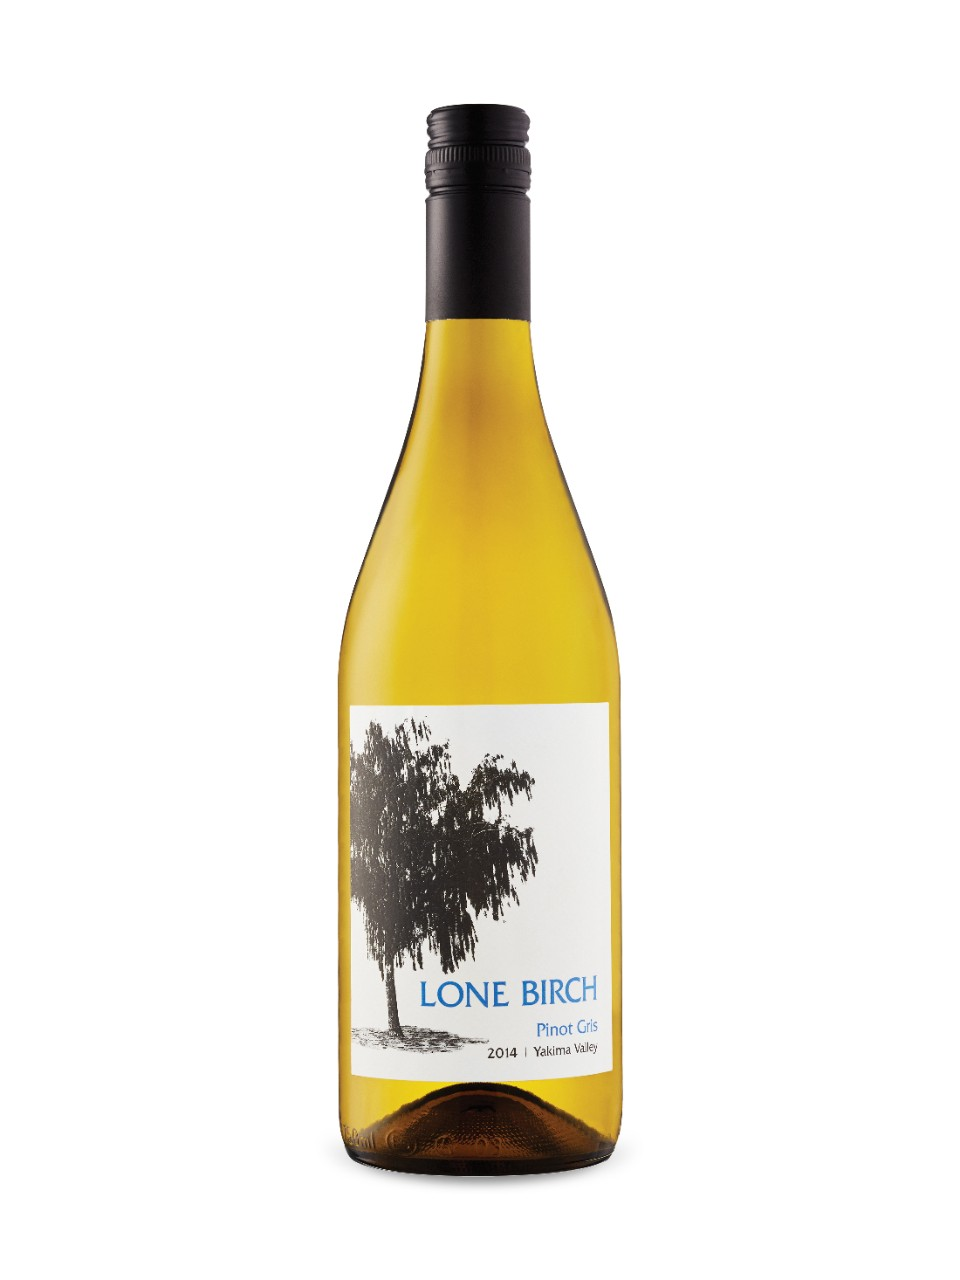 Pinot Gris Lone Birch 2014